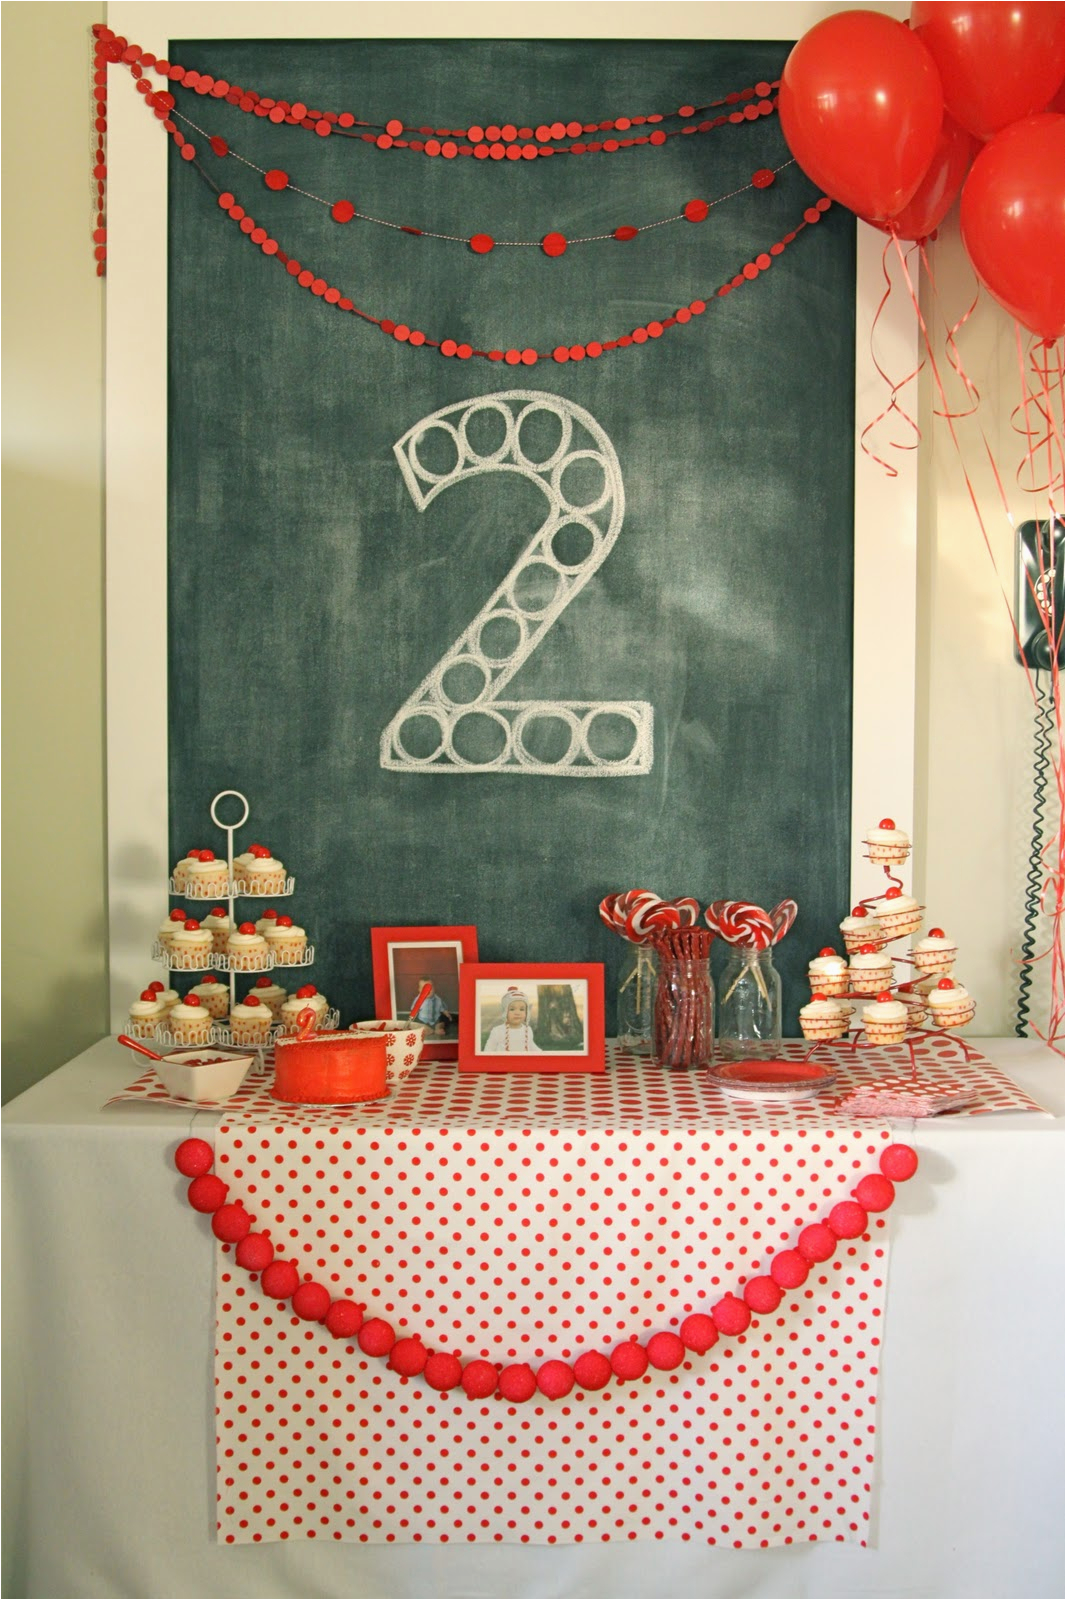 2 Year Old Birthday Decoration Ideas Red Ball Party Levi S Second The Macs